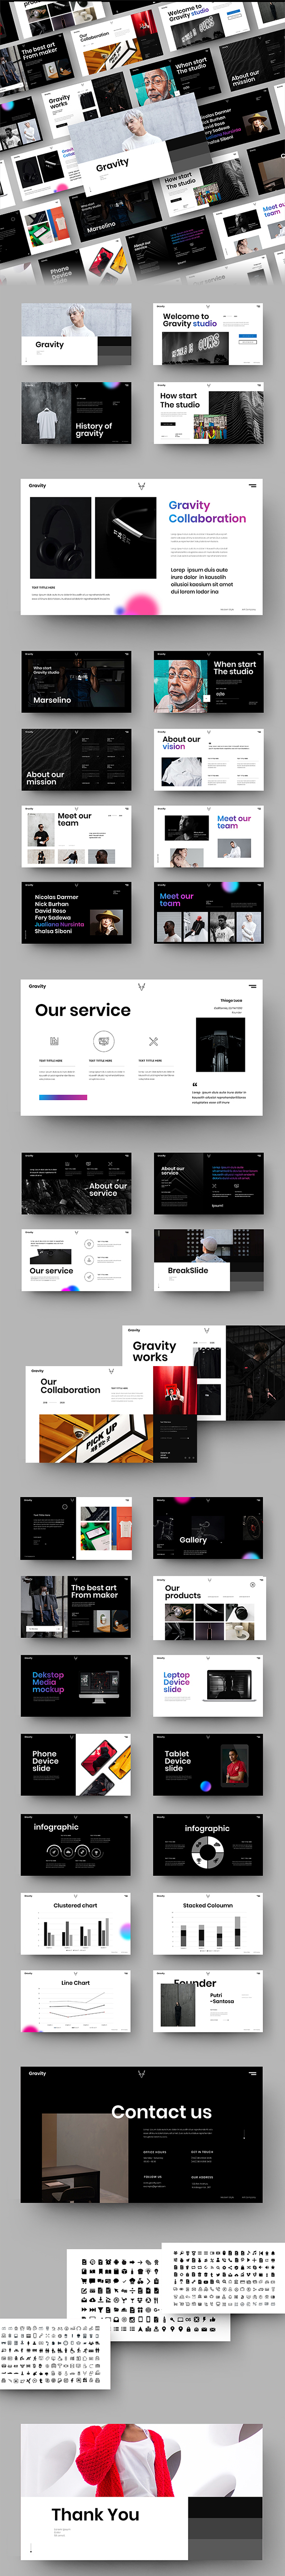 Graphicriver 29507311 Gravity Business Powerpoint Template Zip Updated Nulled Free Download